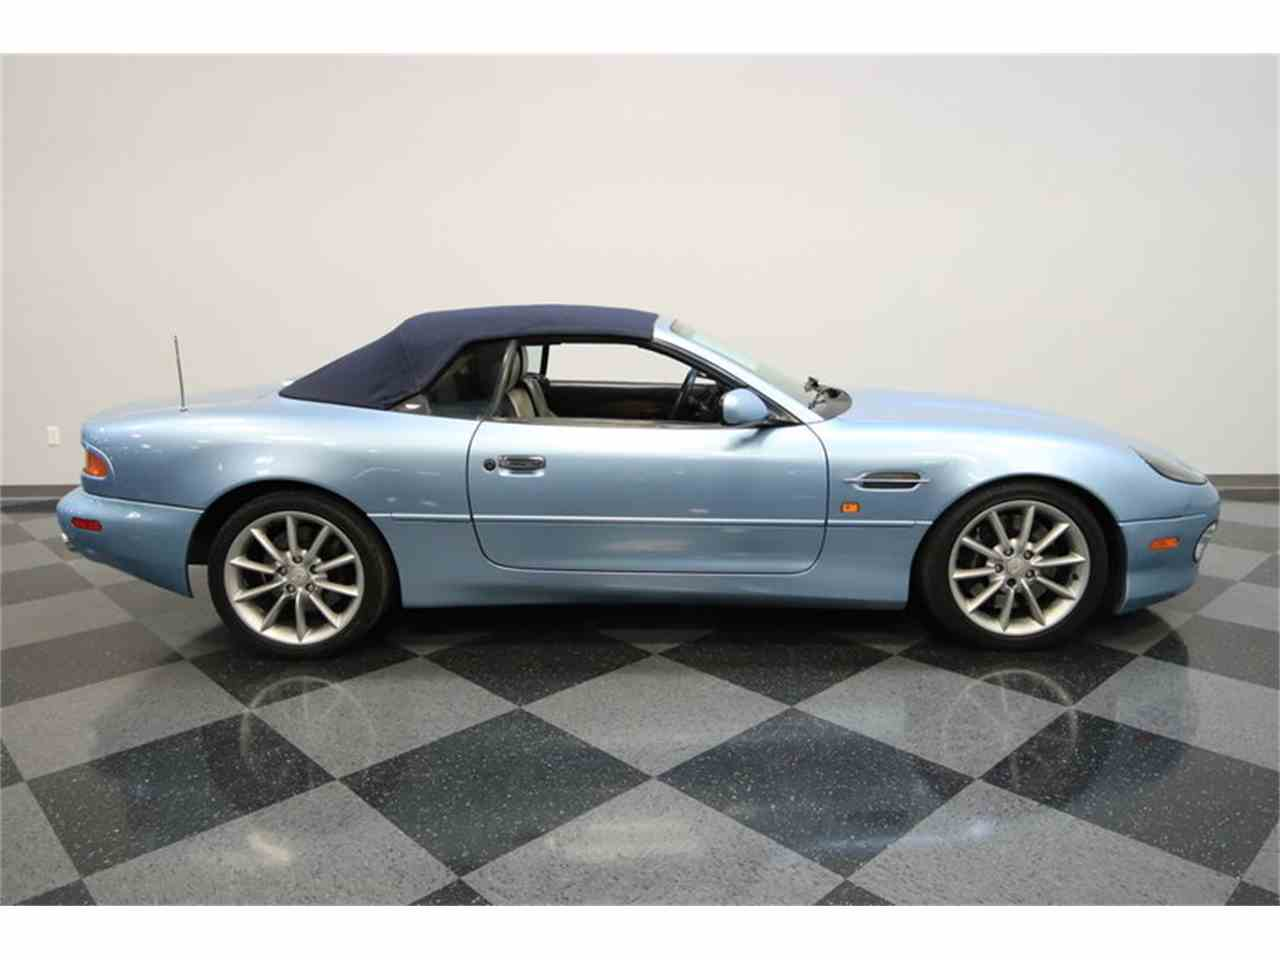 Large Picture of '00 Aston Martin DB7 Vantage Volante - $39,995.00 Offered by Streetside Classics - Phoenix - M73B